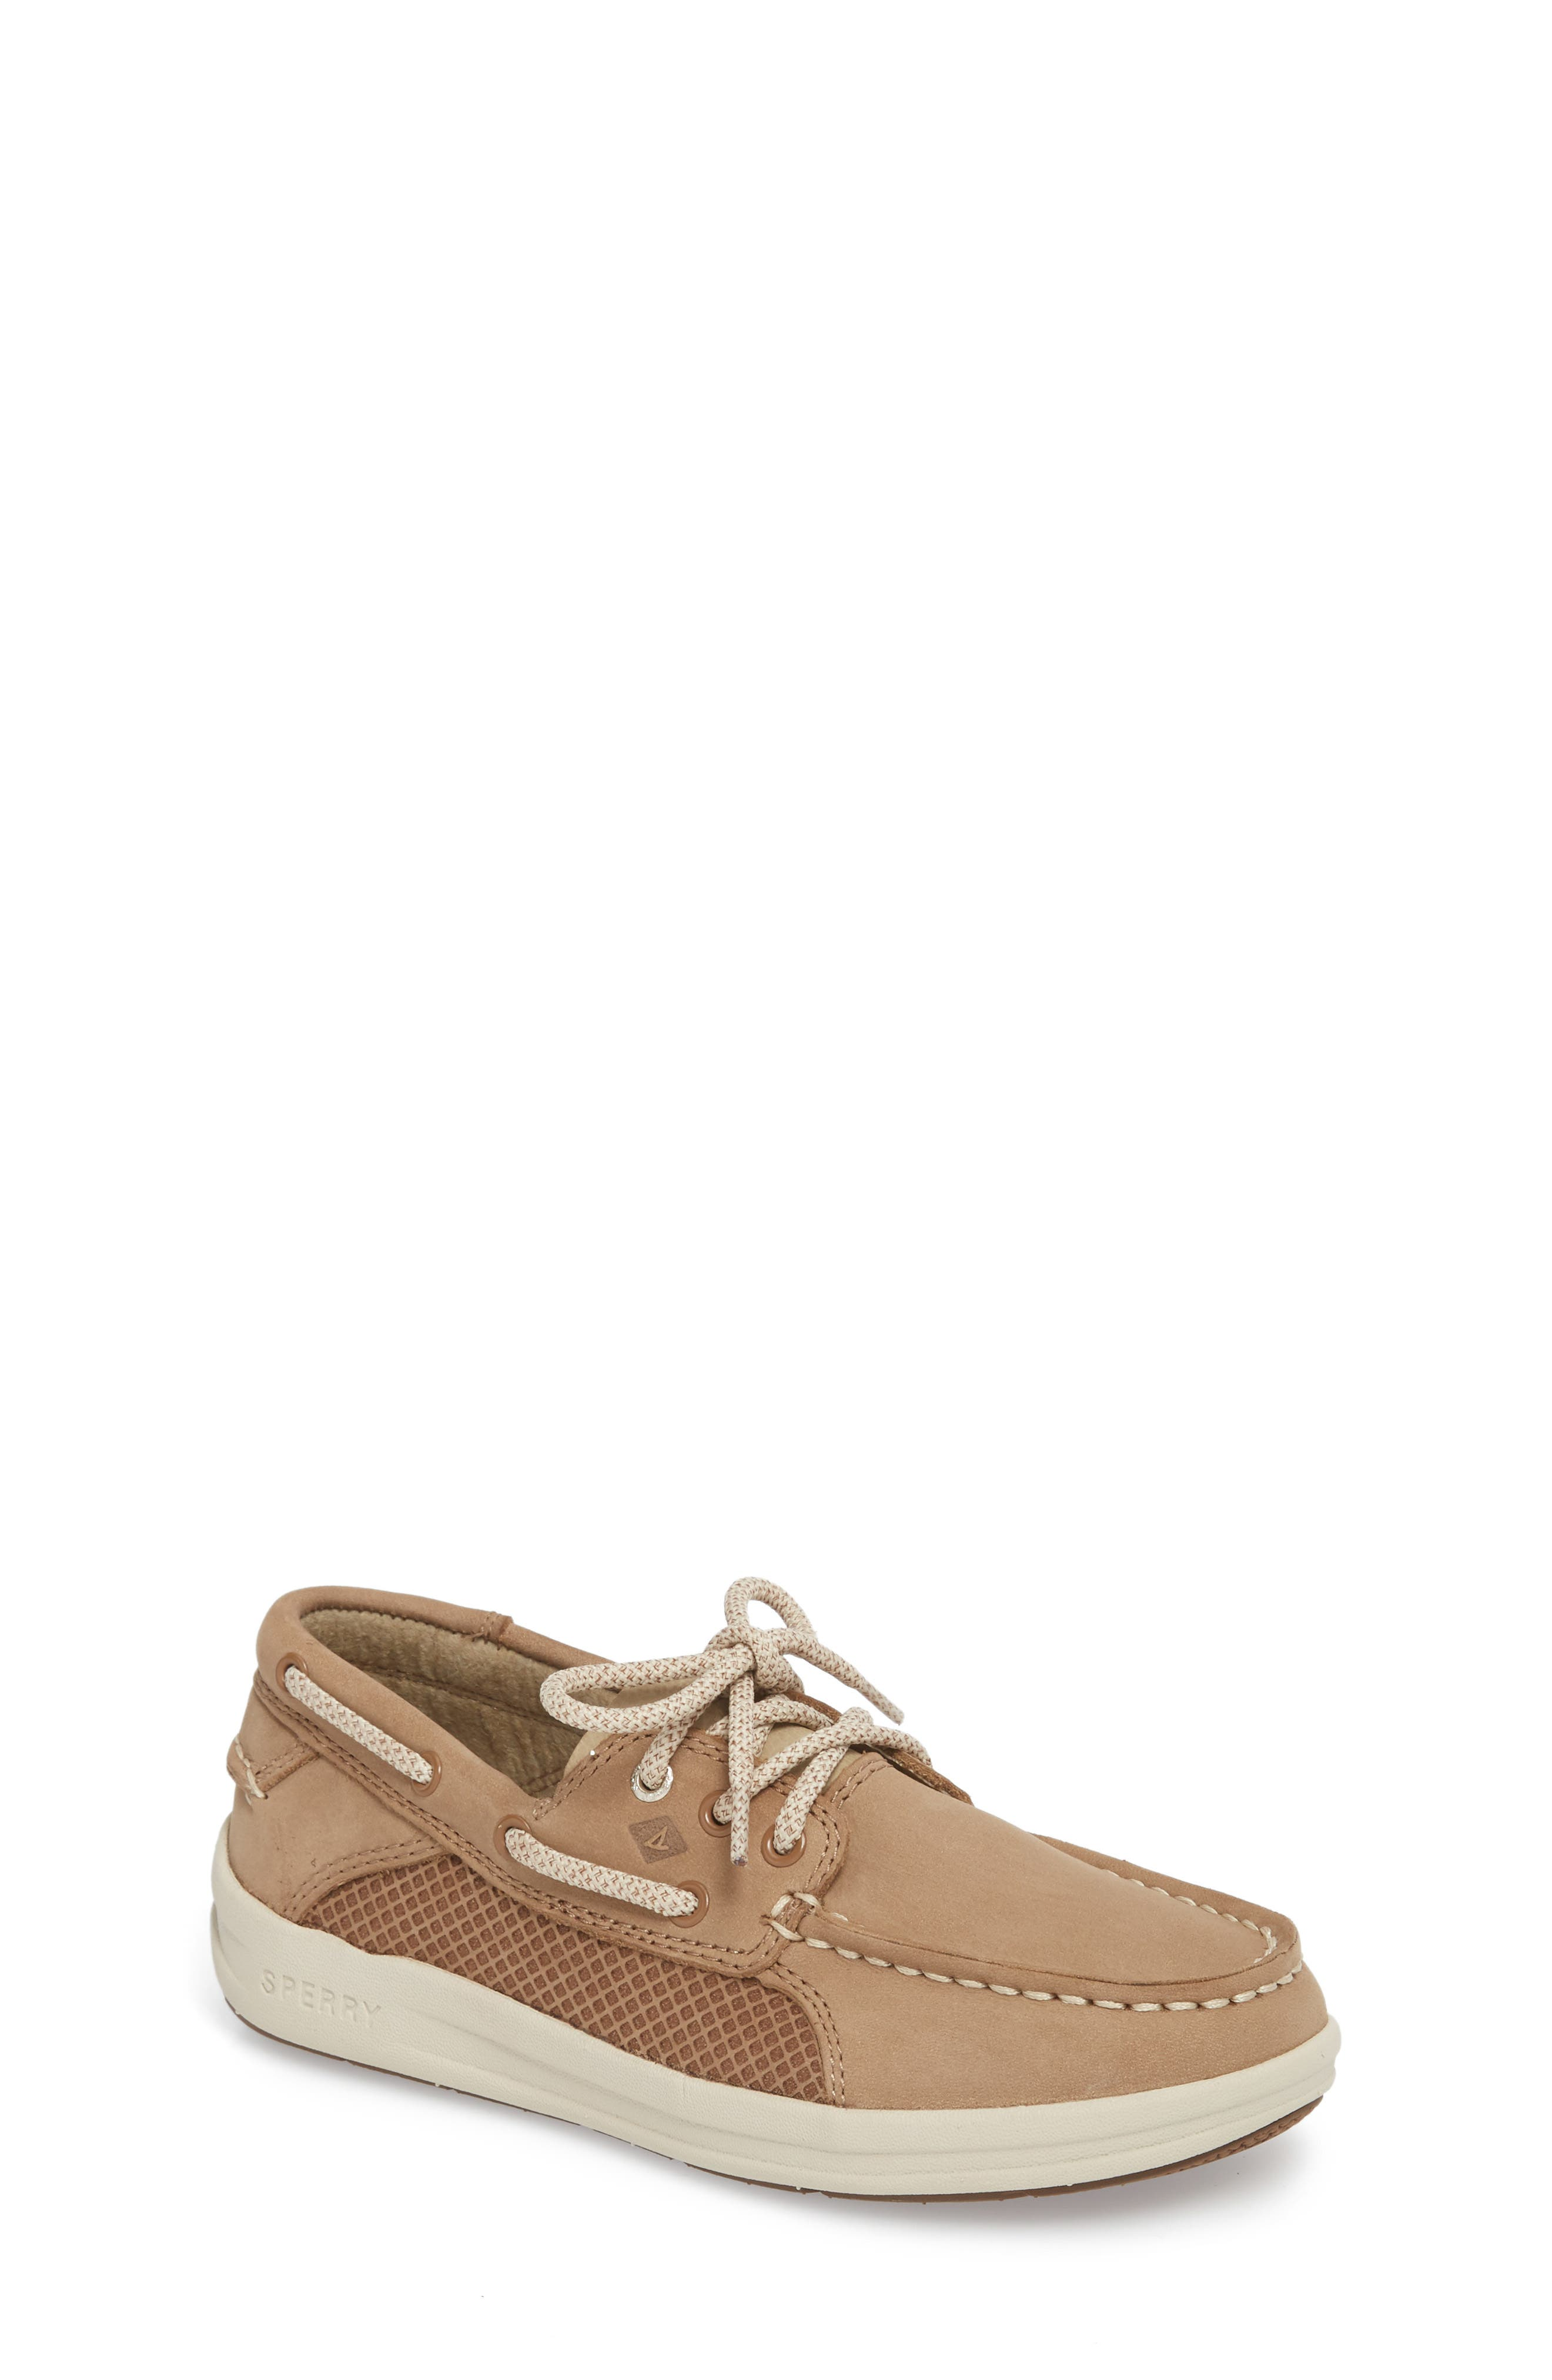 Sperry Gamefish Boat Shoe,                         Main,                         color, 270